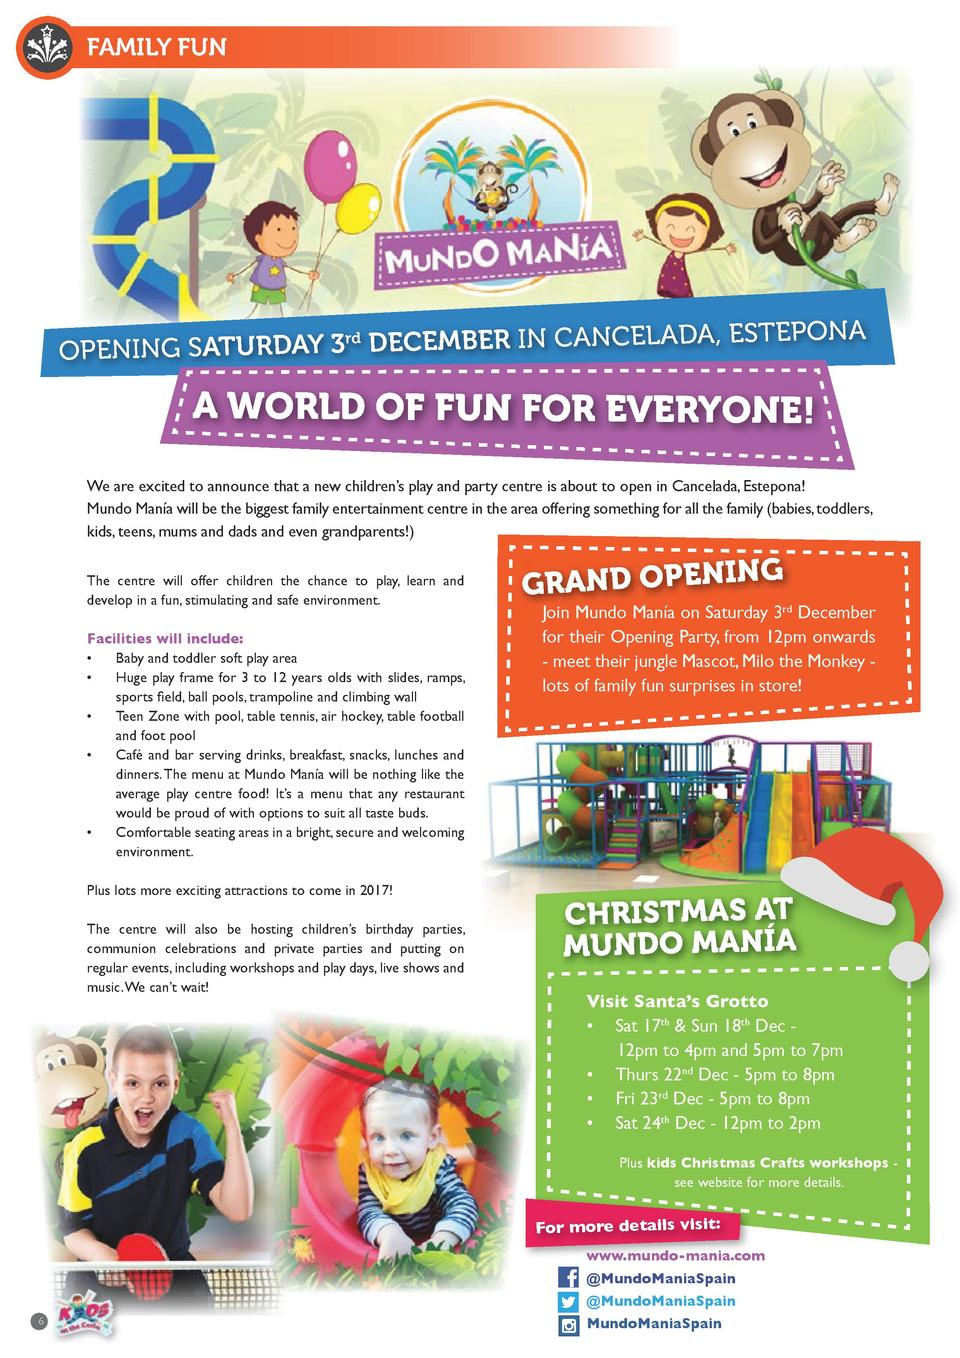 FAMILY FUN  rd NCELADA, ESTEPONA OPENING SATURDAY 3 DECEMBER IN CA  A WORLD OF FUN FOR EVERYONE  We are excited to announc...